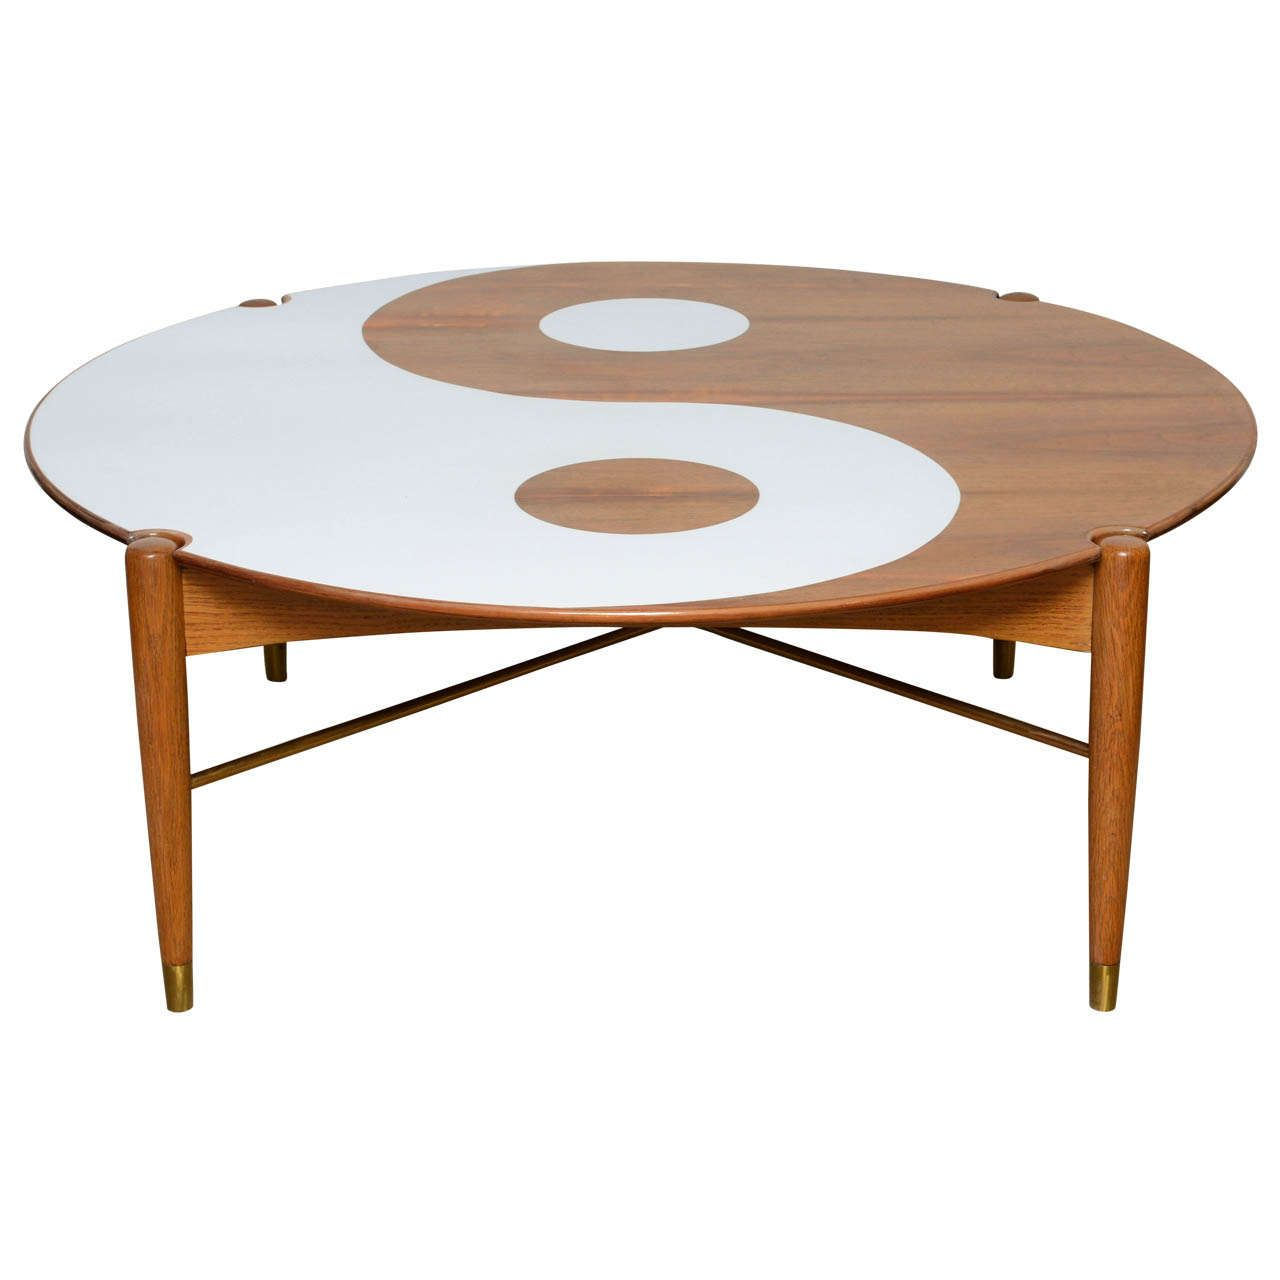 yin and yang mid-century modern round walnut swedish coffee table